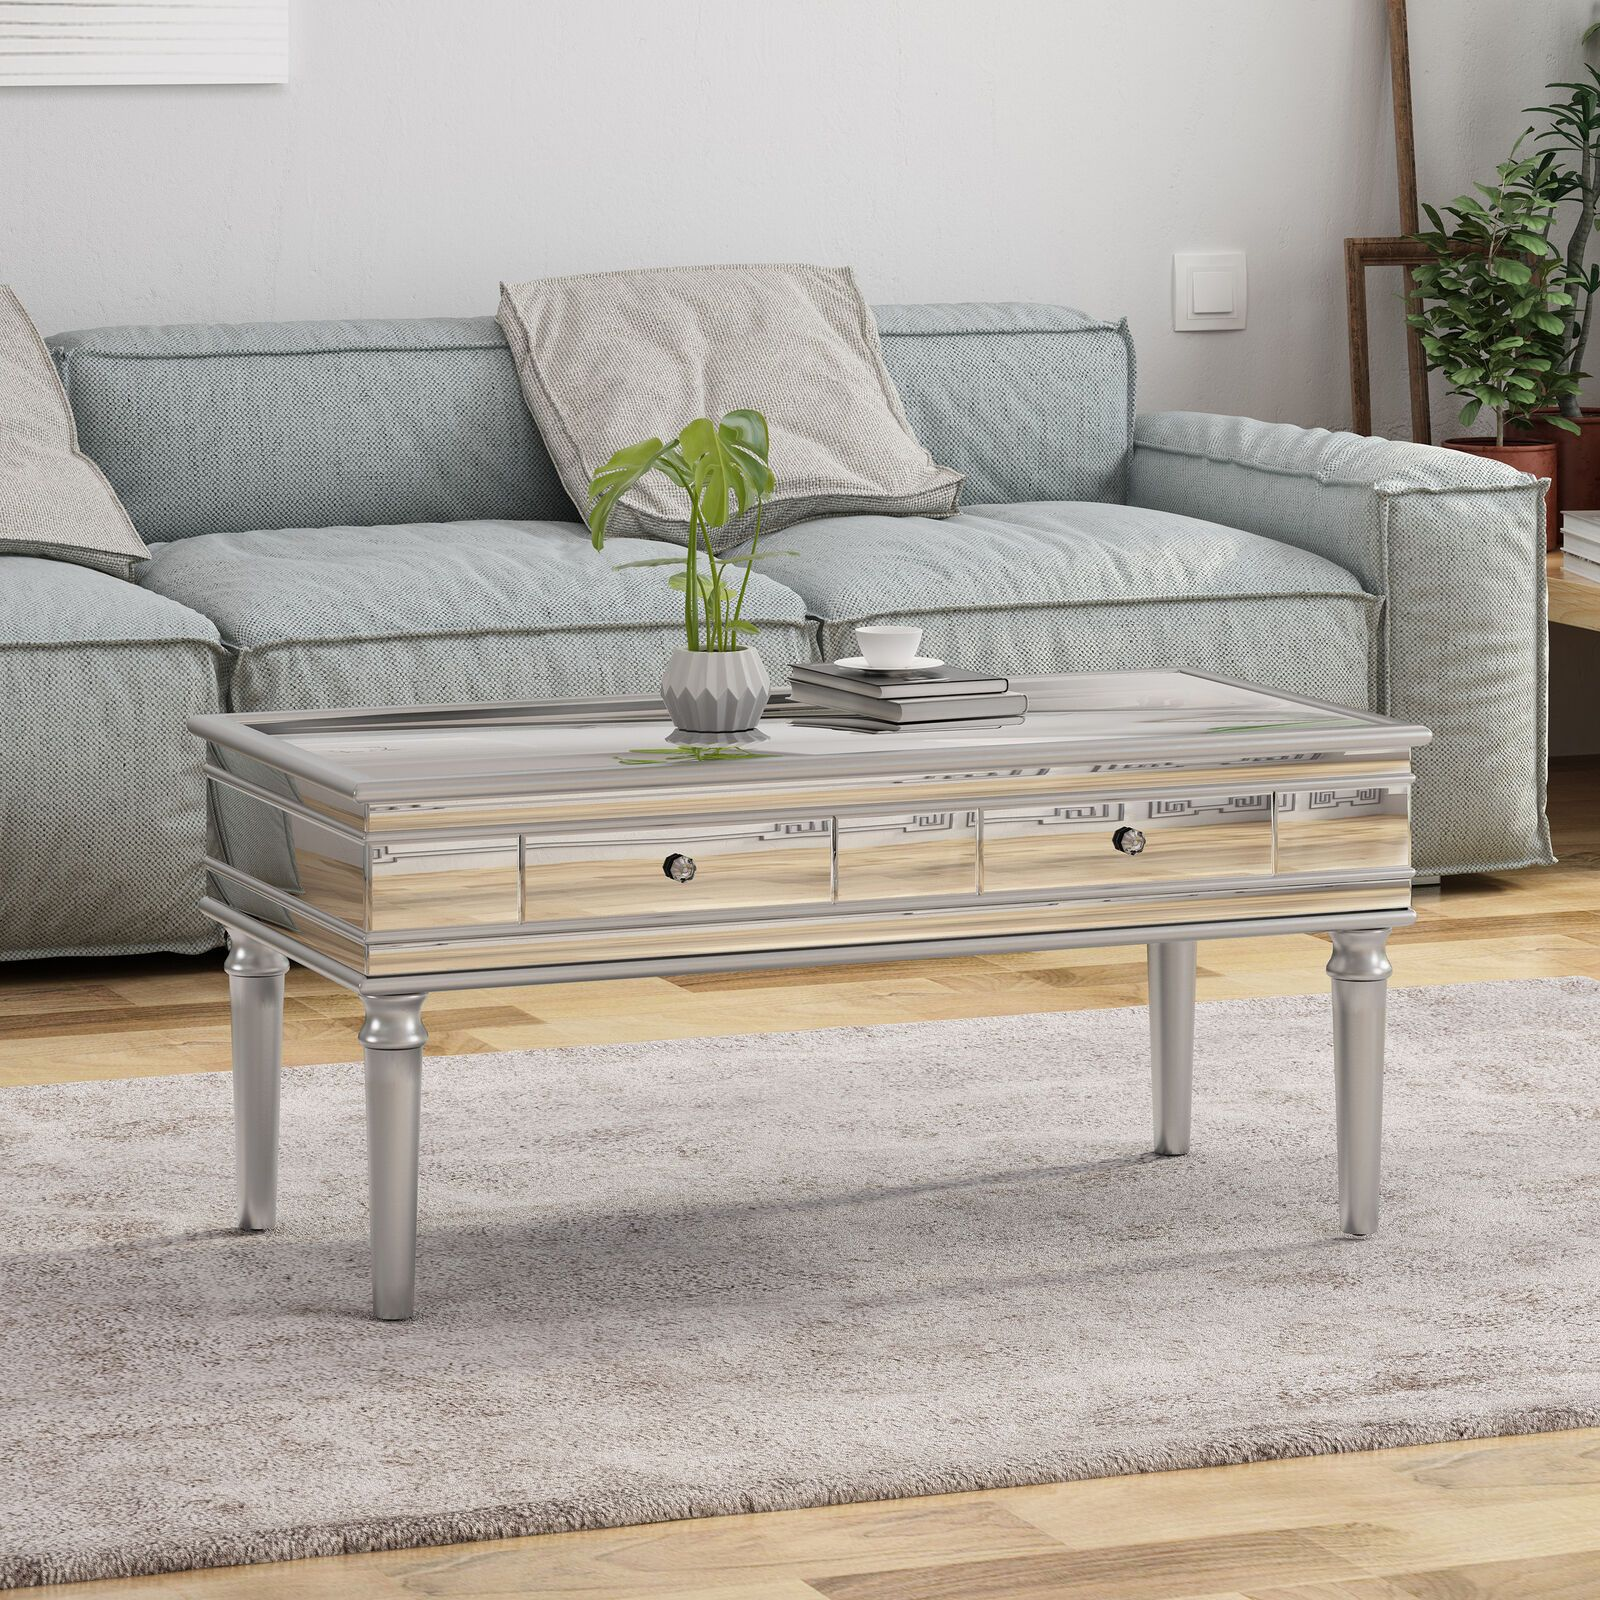 Xanthe Modern Mirrored Coffee Table With Drawers Tempered Glass Coffee Table Mirrored Coffee Tables Table [ 1600 x 1600 Pixel ]